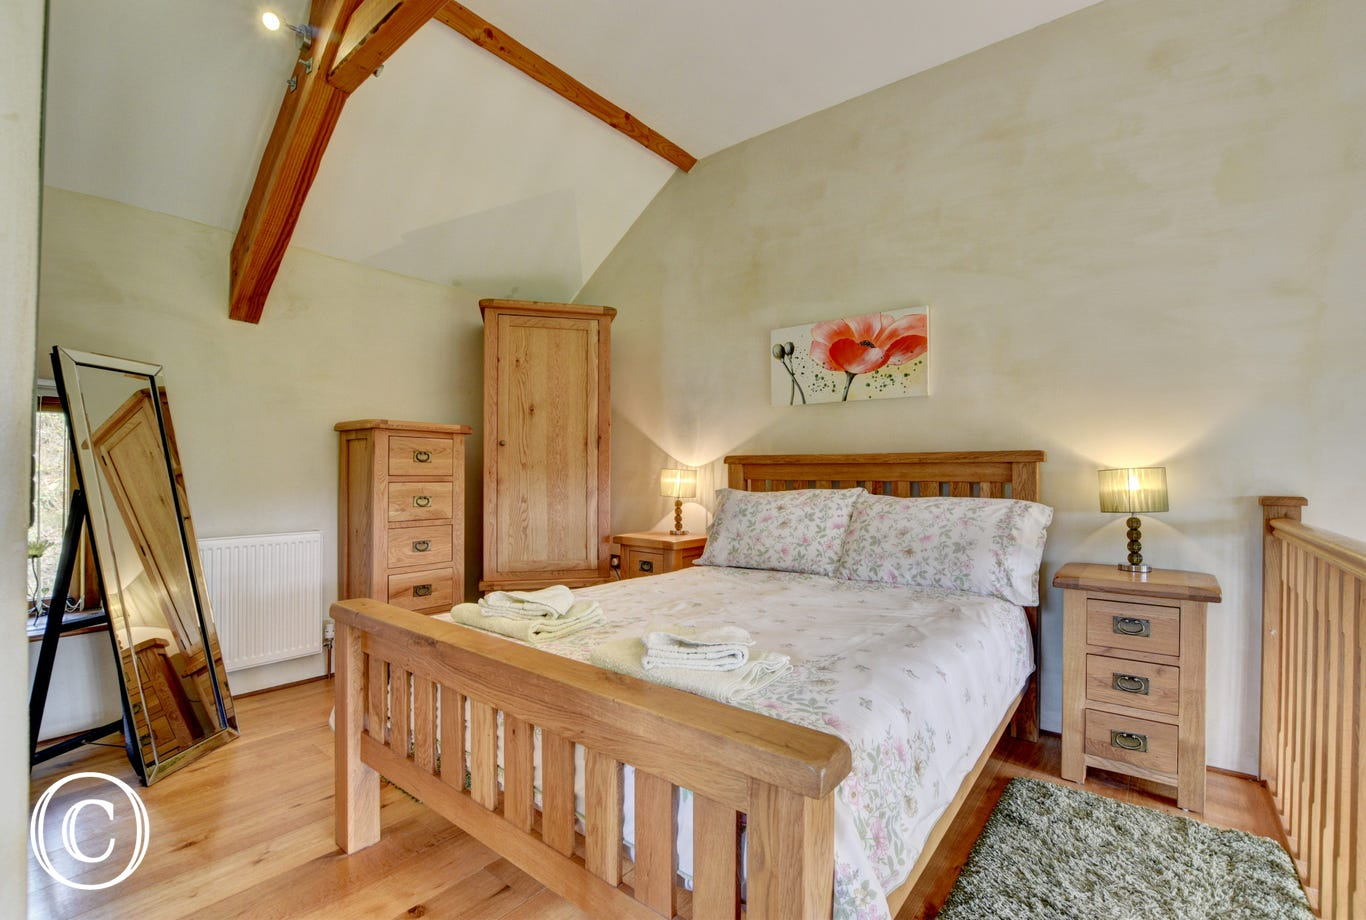 On a mezzanine floor above, the stylish bedroom has a pristine en suite shower room